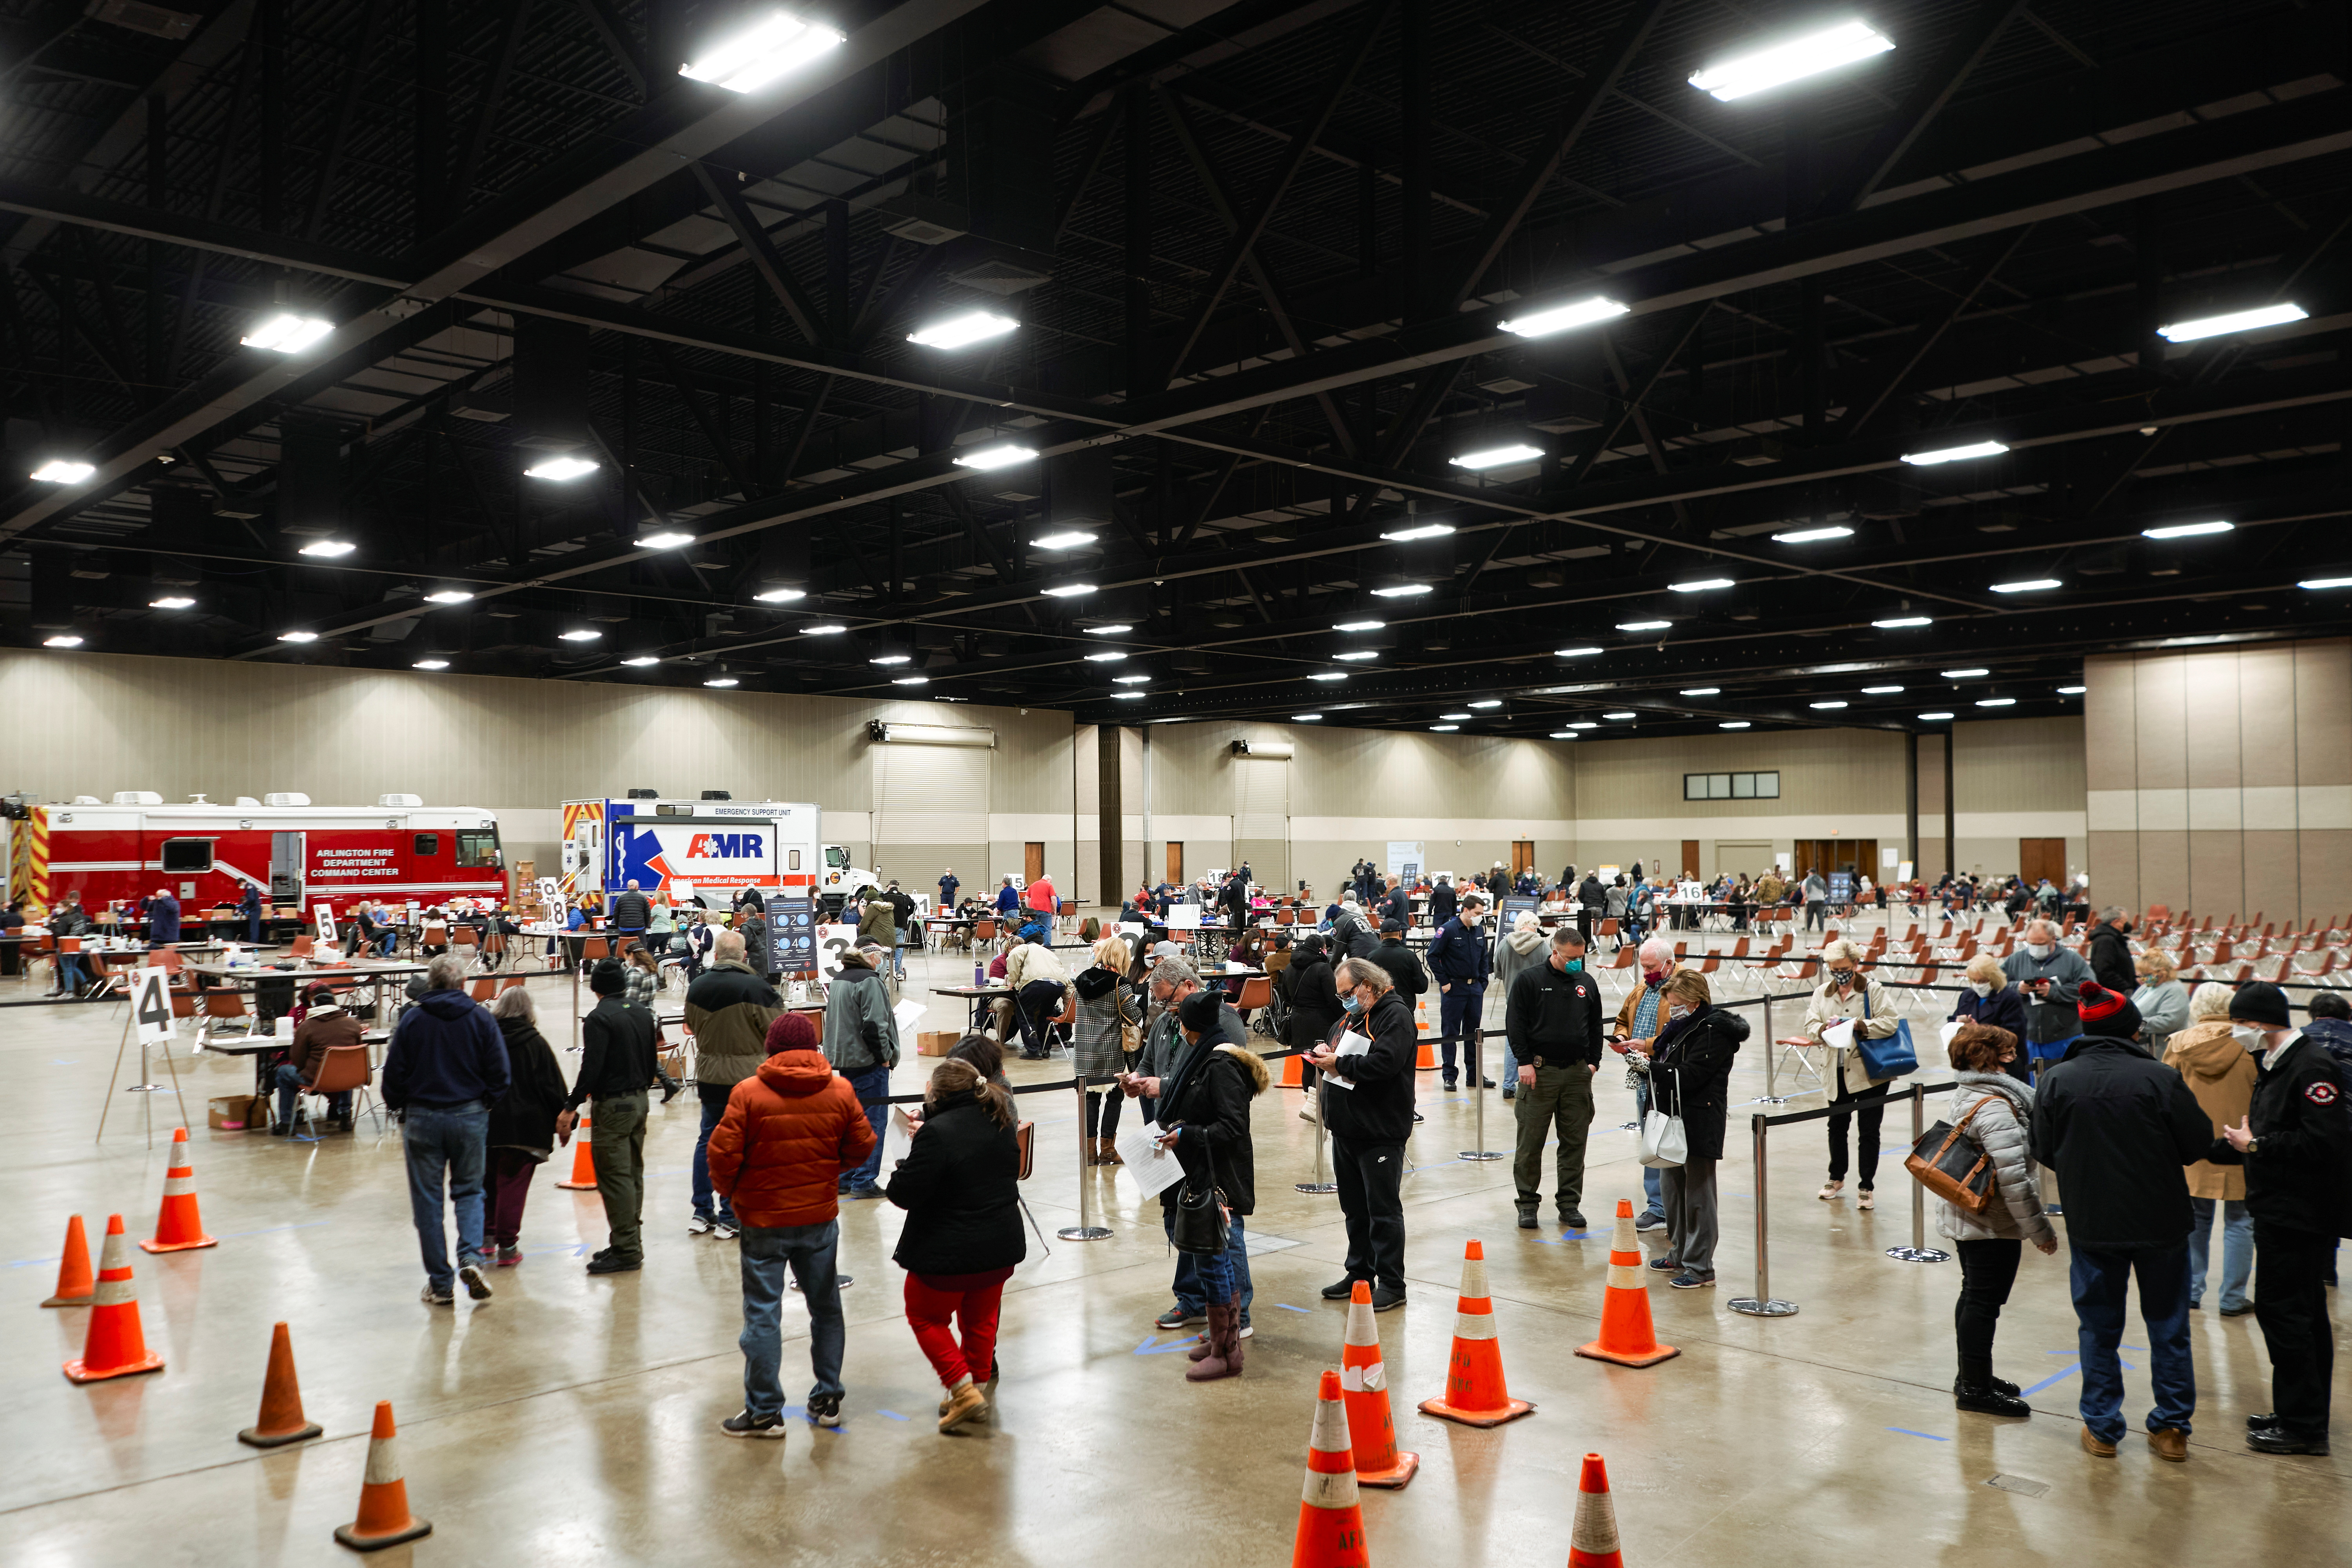 People wait in line to be inoculated against the coronavirus disease (COVID-19) at a vaccination site at the Esports Stadium Arlington & Expo Center in Arlington, Texas, U.S. February 12, 2021.  REUTERS/Cooper Neill